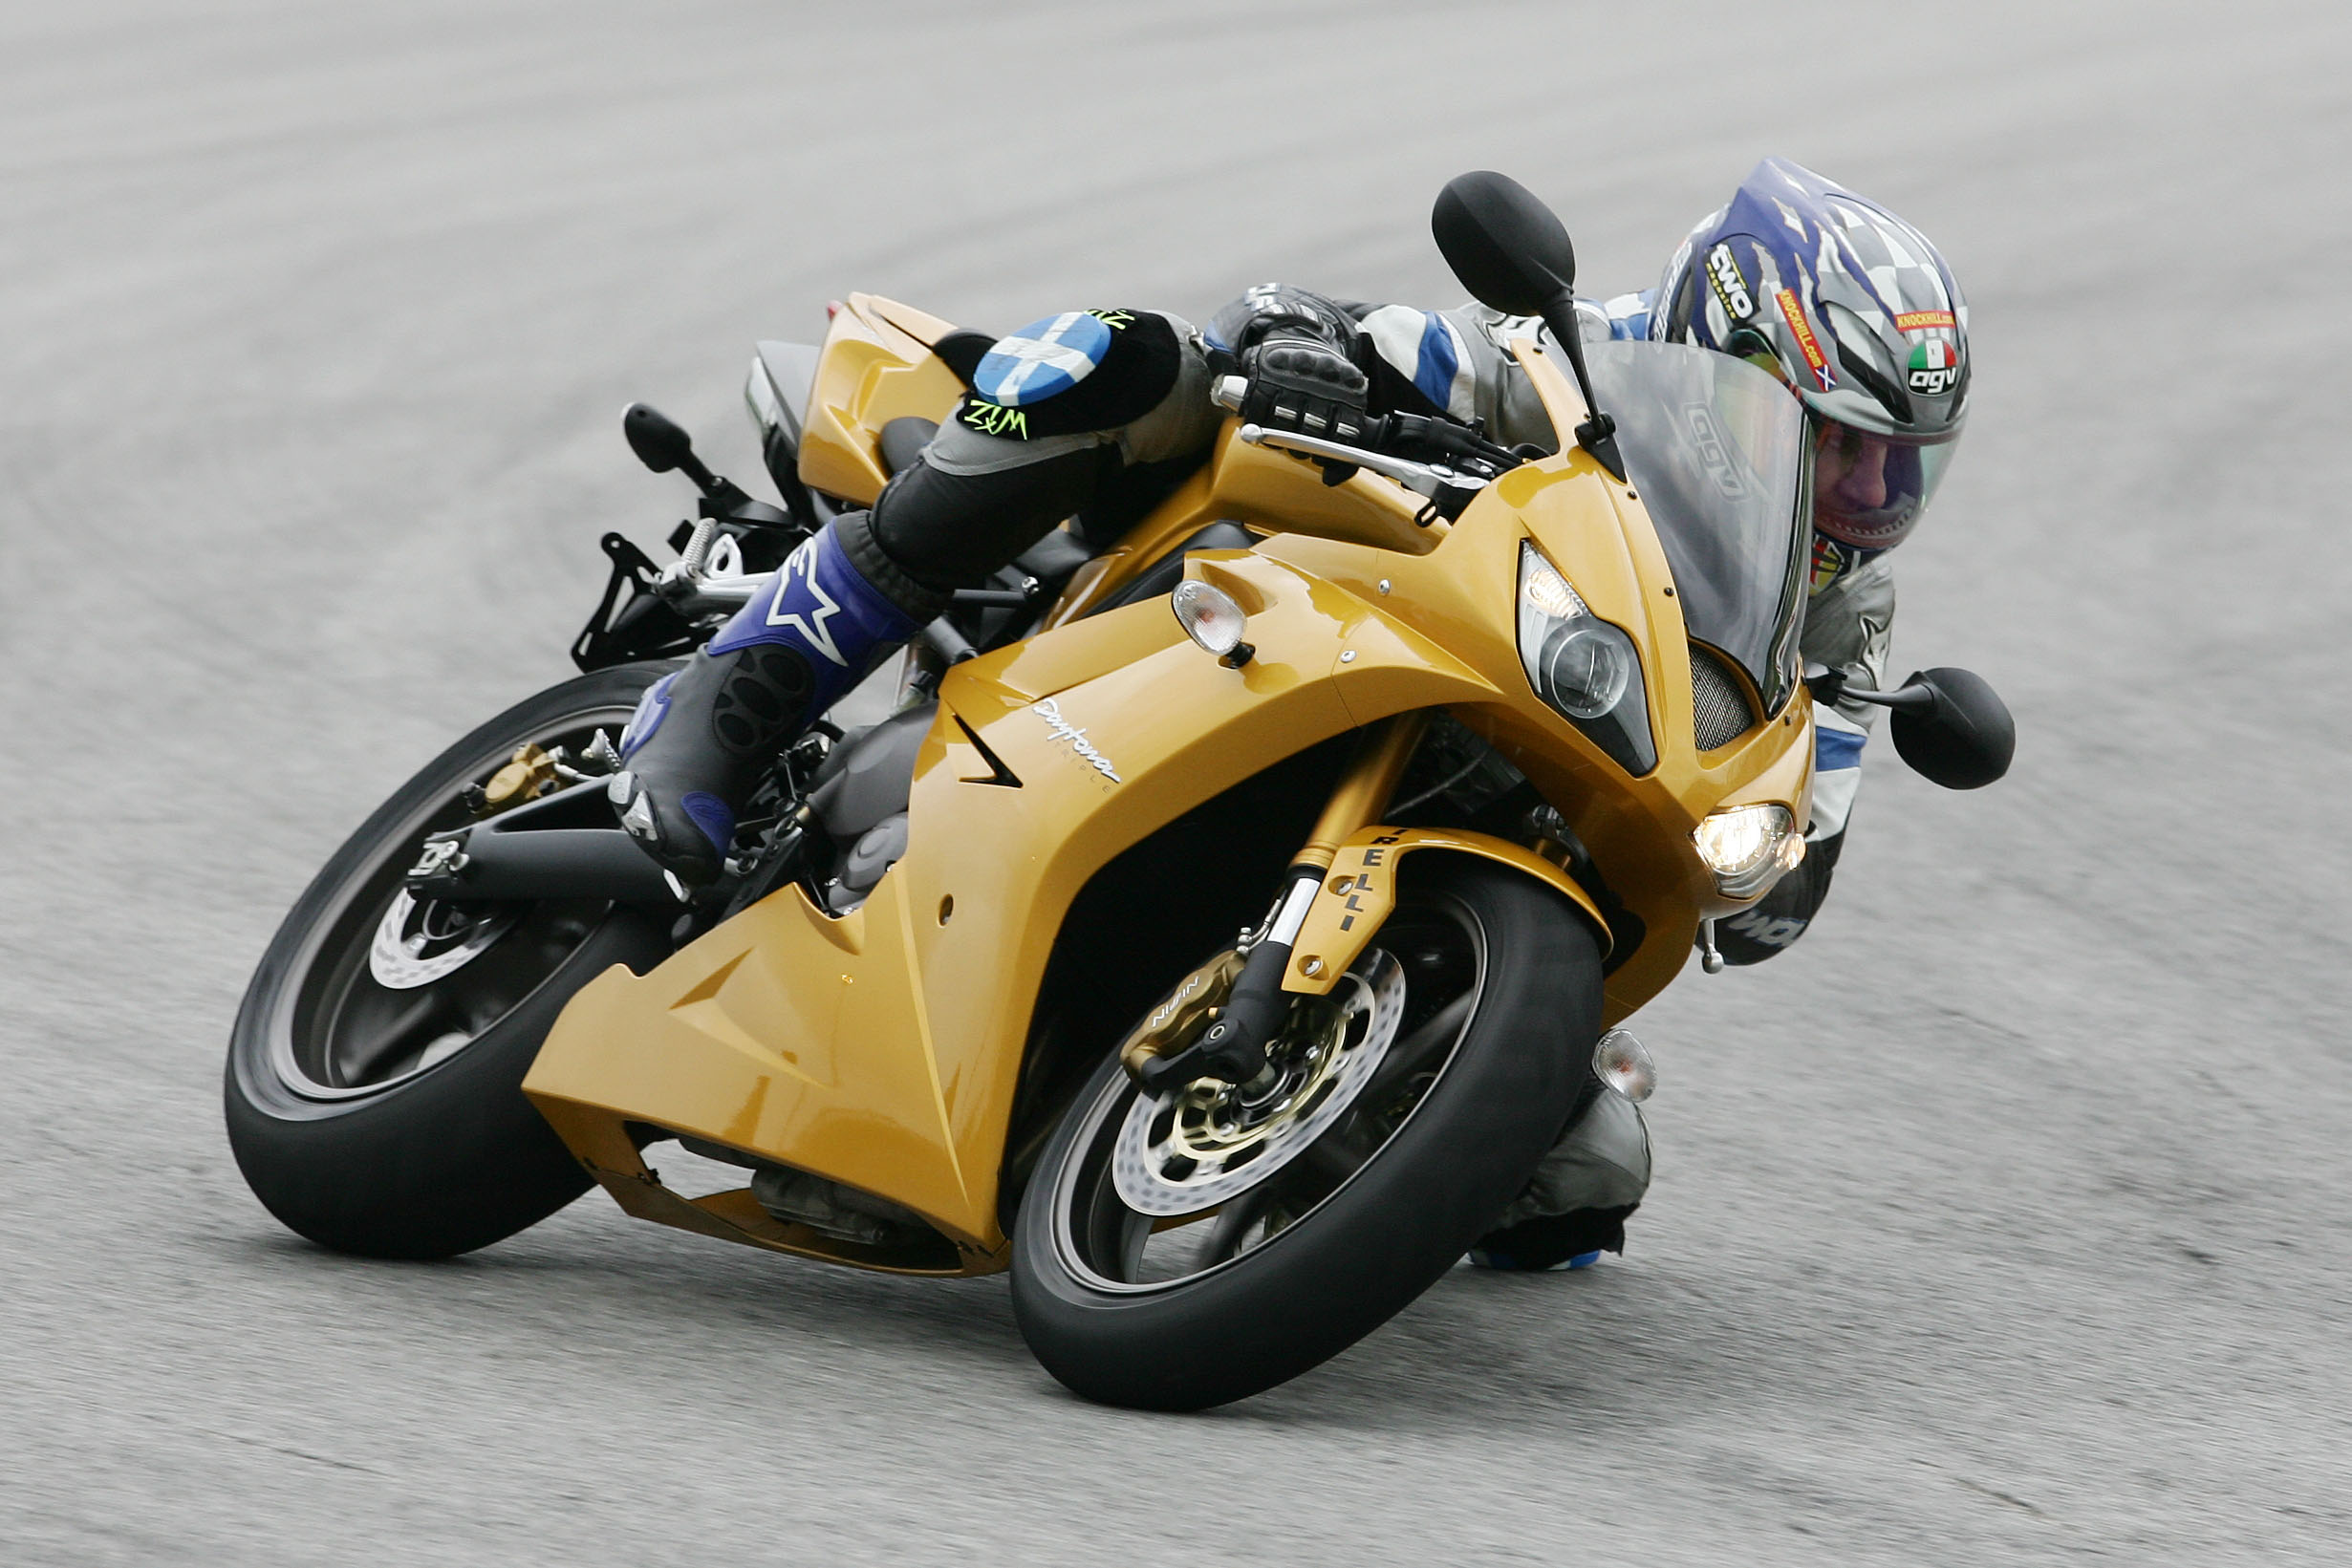 First Ride: 2006 Triumph Daytona 675